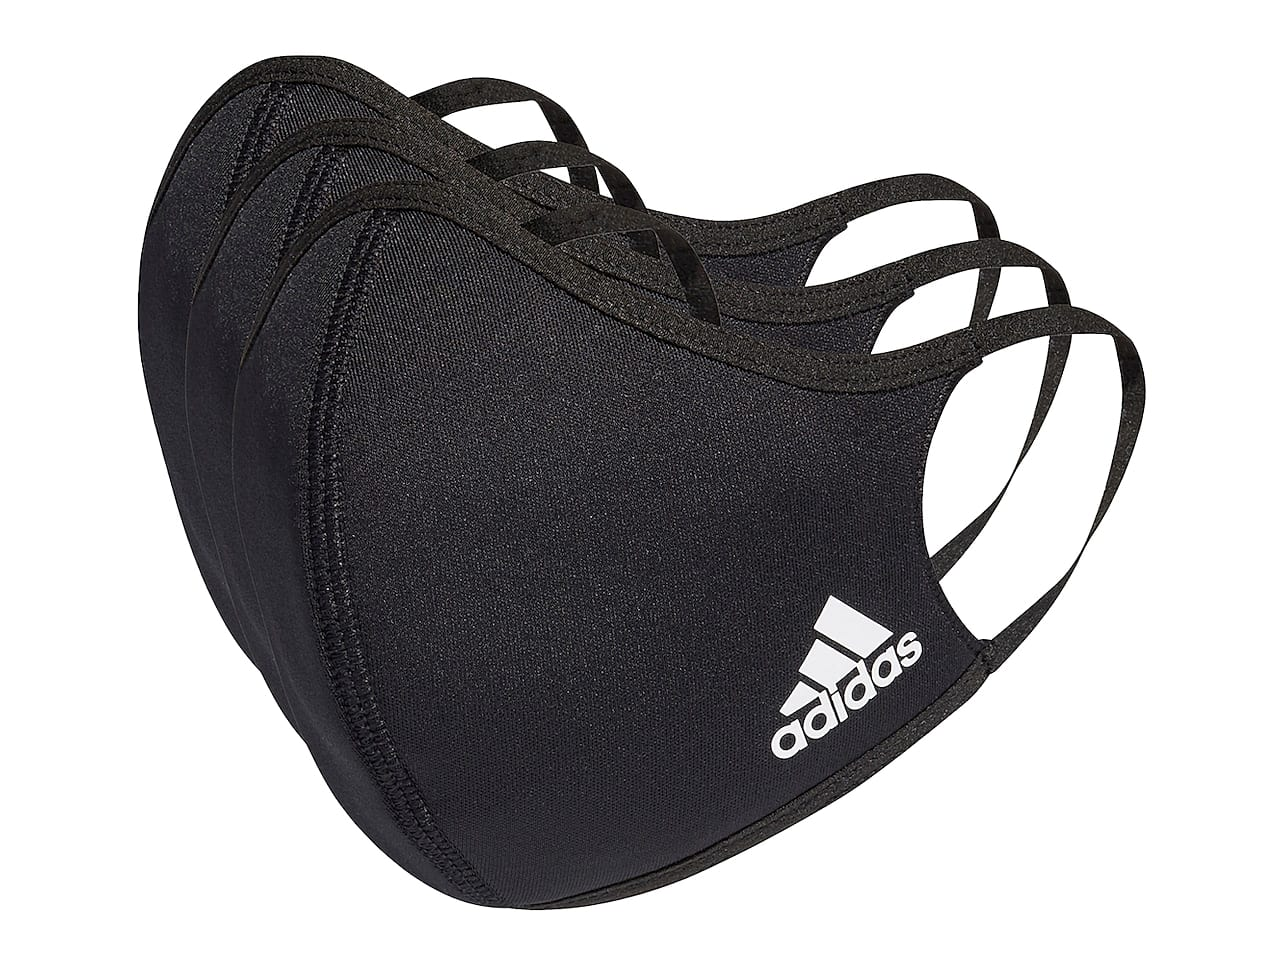 3-Pack of adidas Face Mask (M/L)